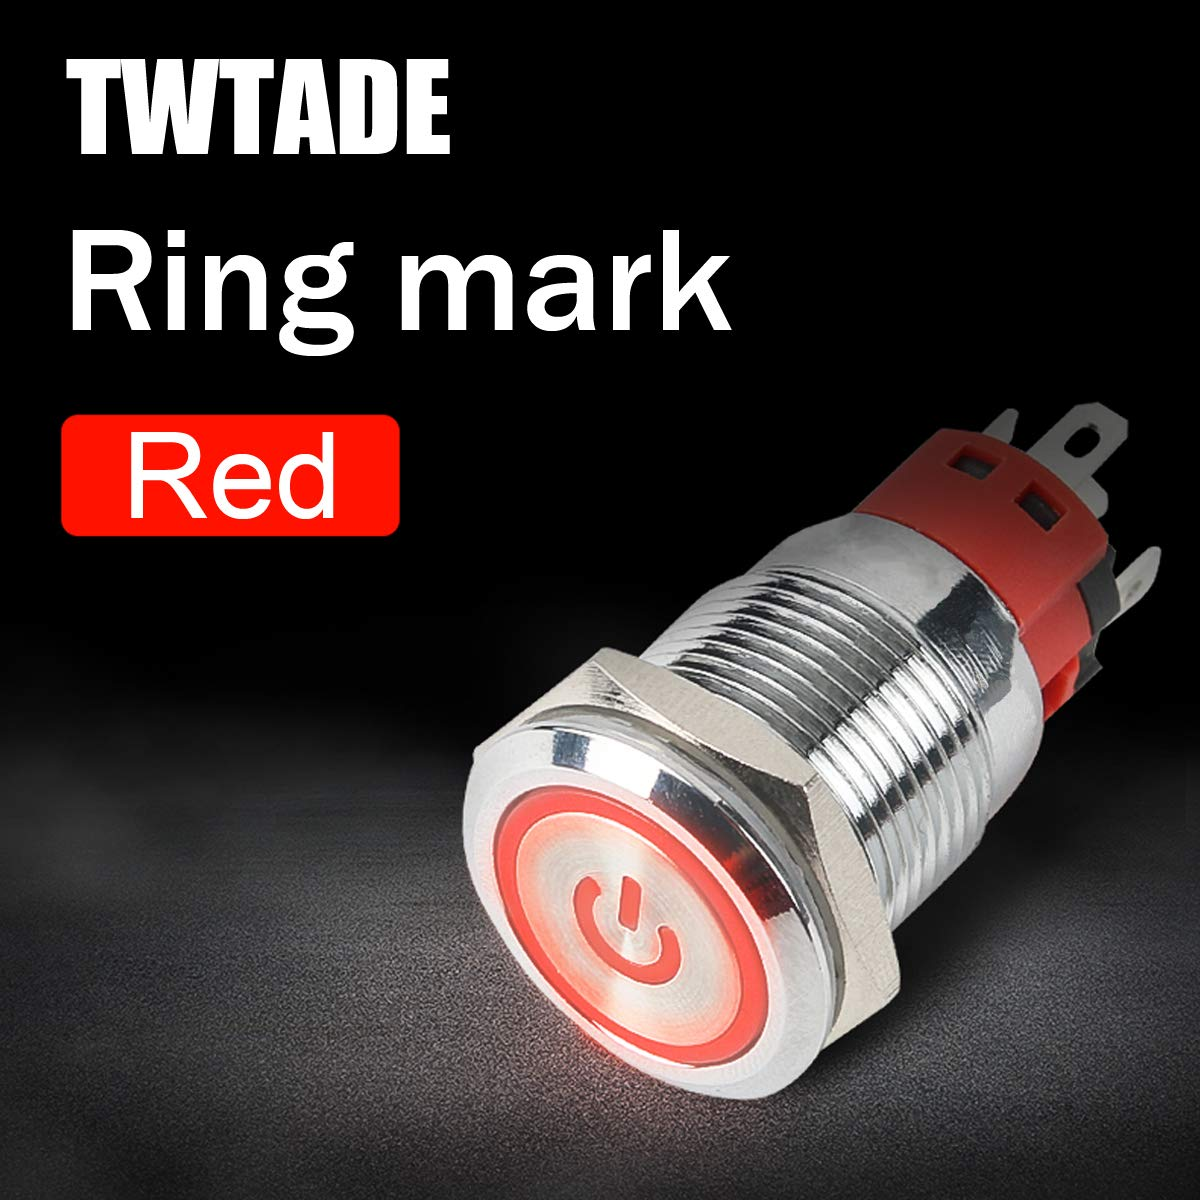 5 Year Warranty TWTADE 19mm IP65 Waterproof Latching Power Metal Push Button Switch 3//4 5A DC12V Stainless Steel Shell Yellow LED Ring Switch 1NO 1NC with Wire Socket Plug YJ-GQ19BF-D-L-Y